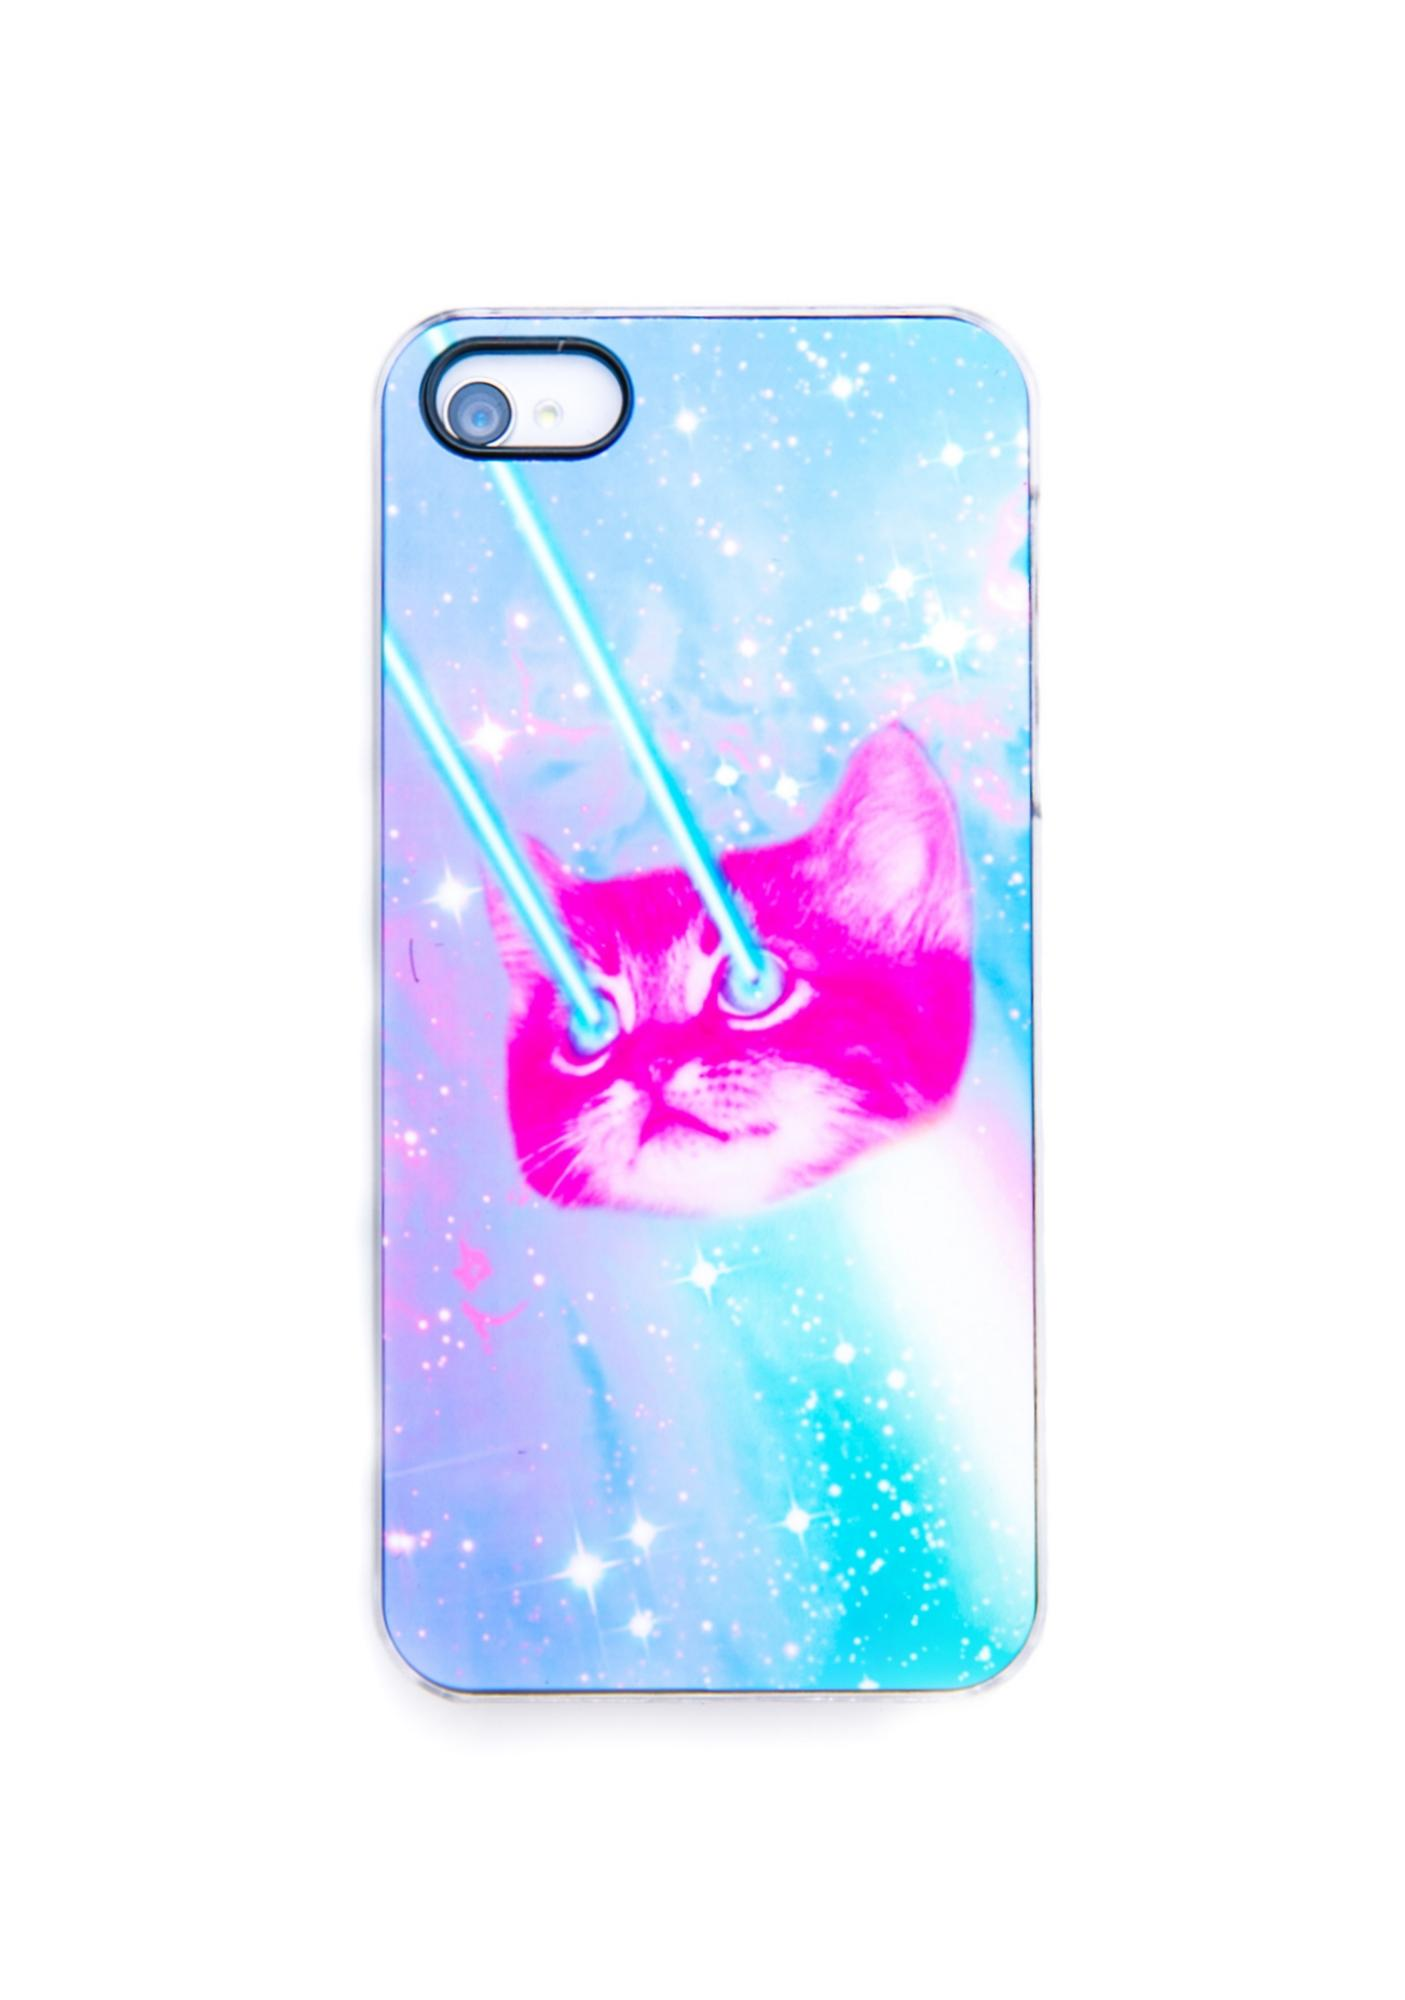 Nyan's Revenge iPhone 5 Case